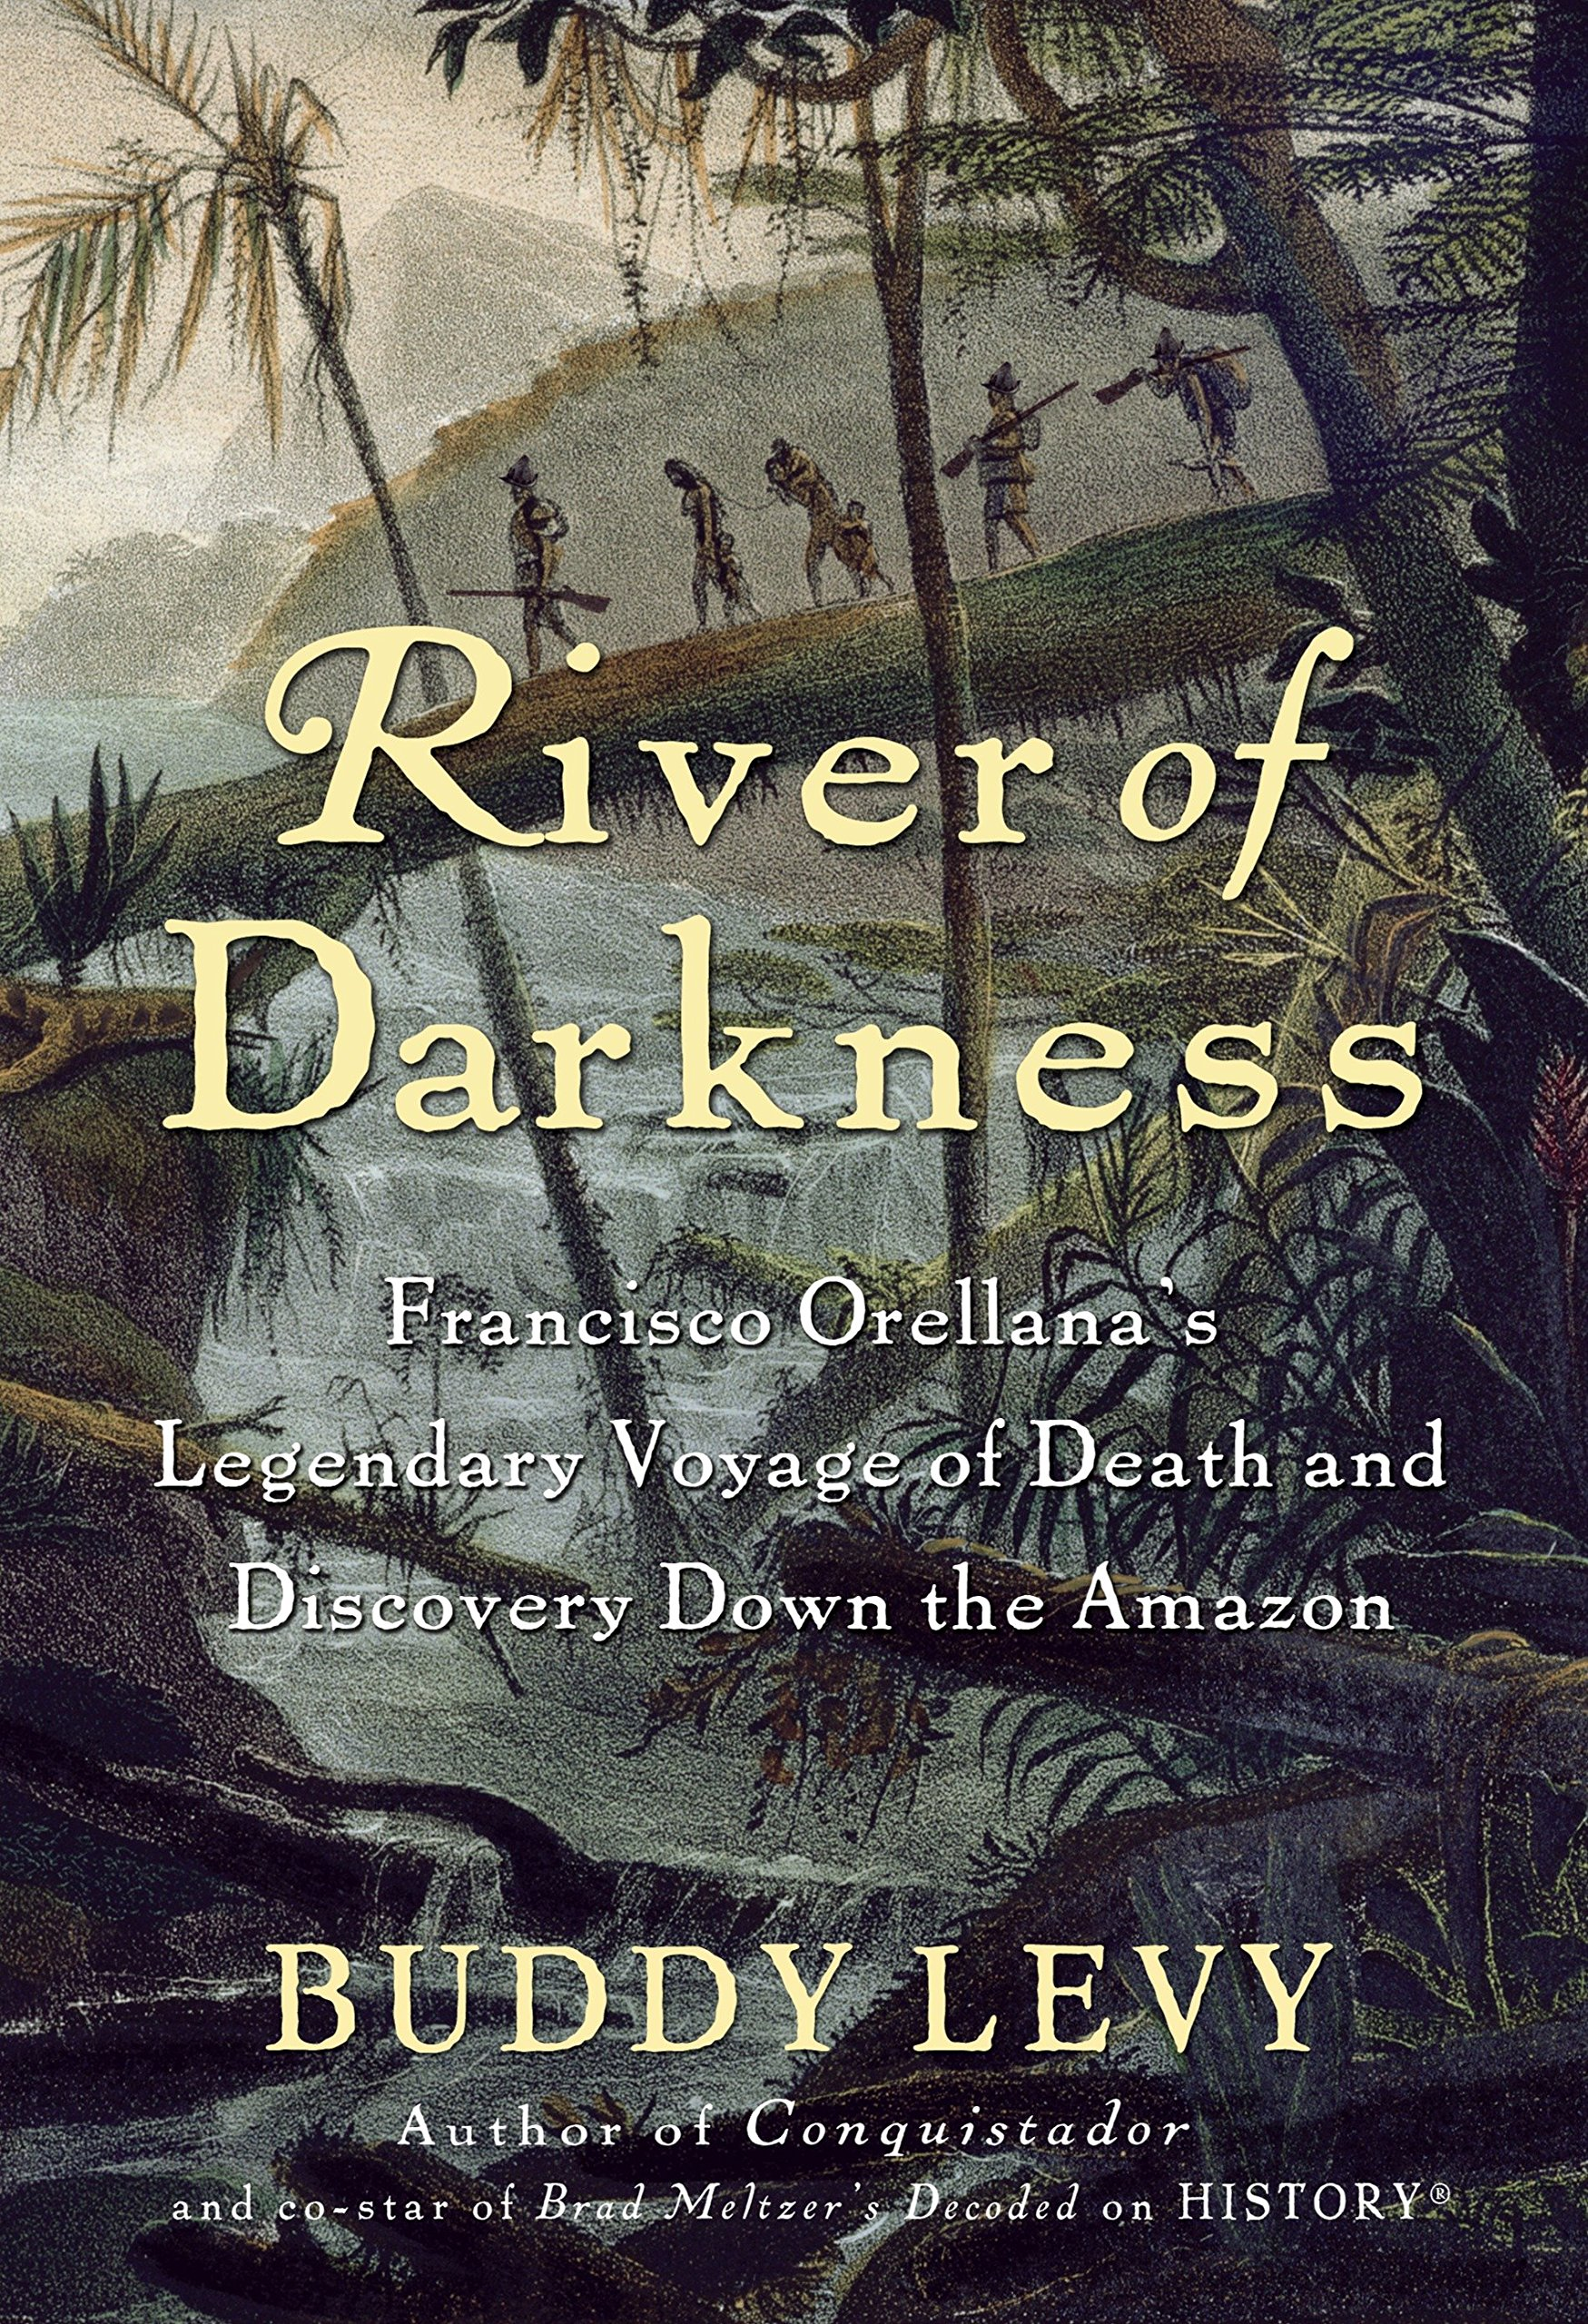 Download River of Darkness: Francisco Orellana's Legendary Voyage of Death and Discovery Down the Amazon PDF